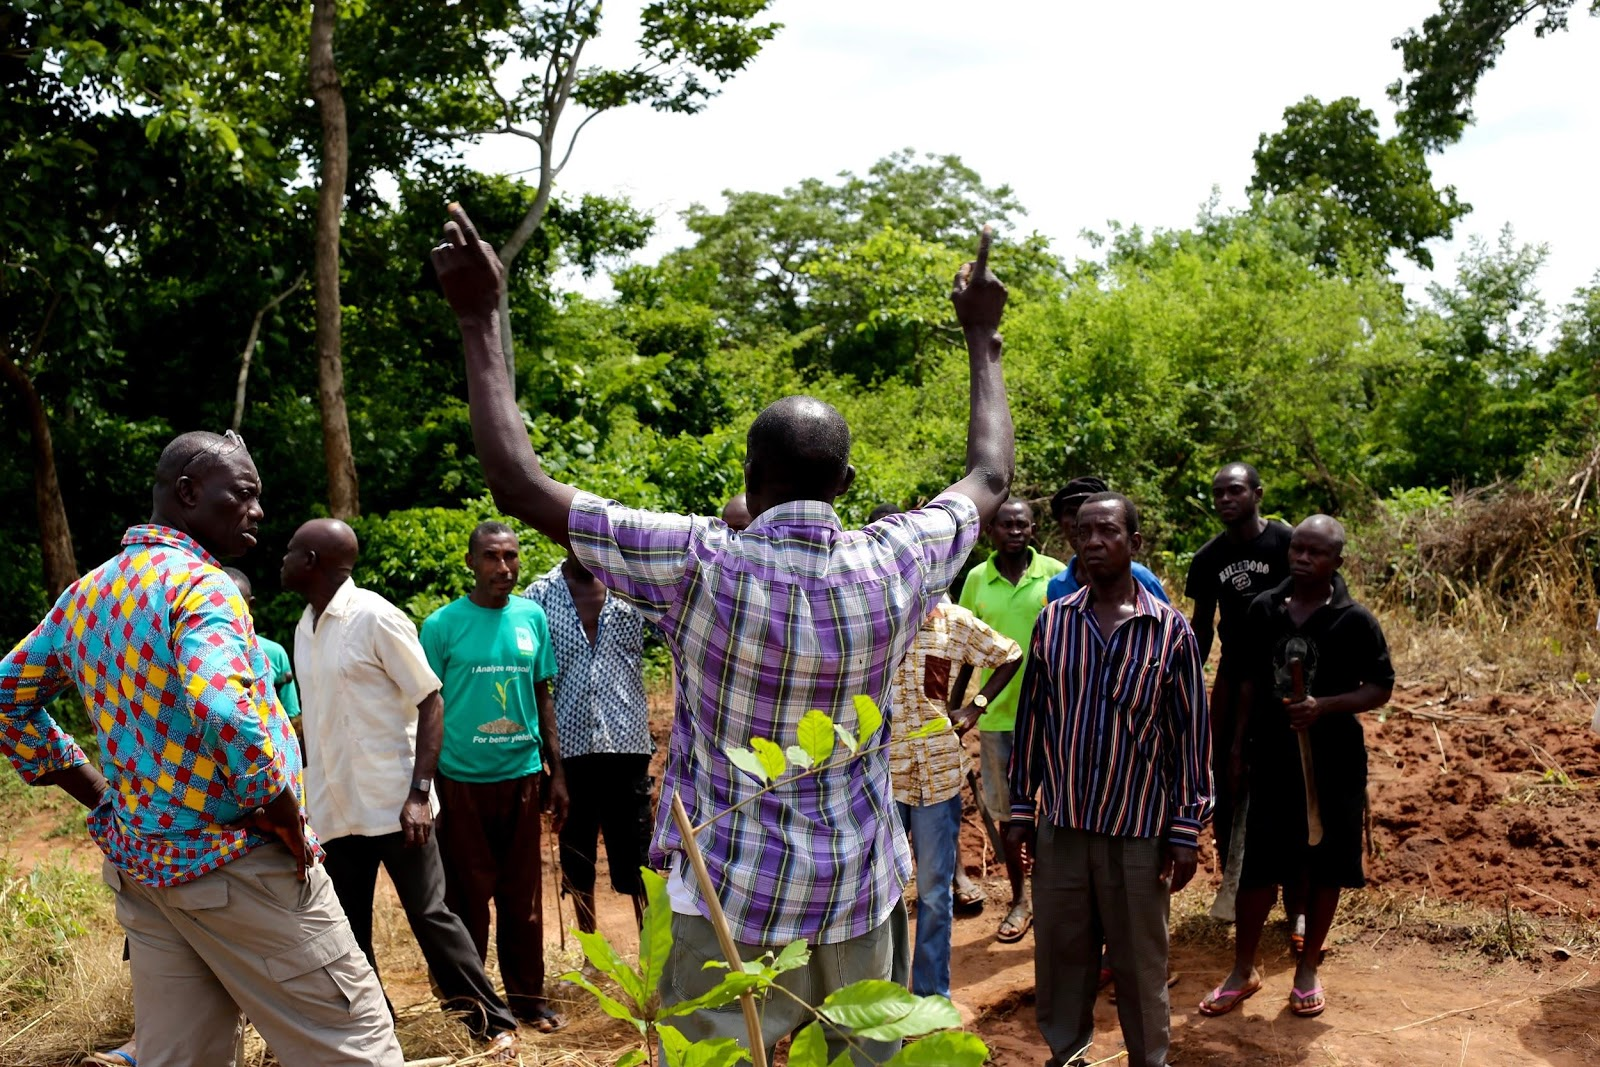 Mr. Nartey, a regional Manager for MoringaConnect, shows a crowd of field agents and farmers the best methods for planting moringa seeds.